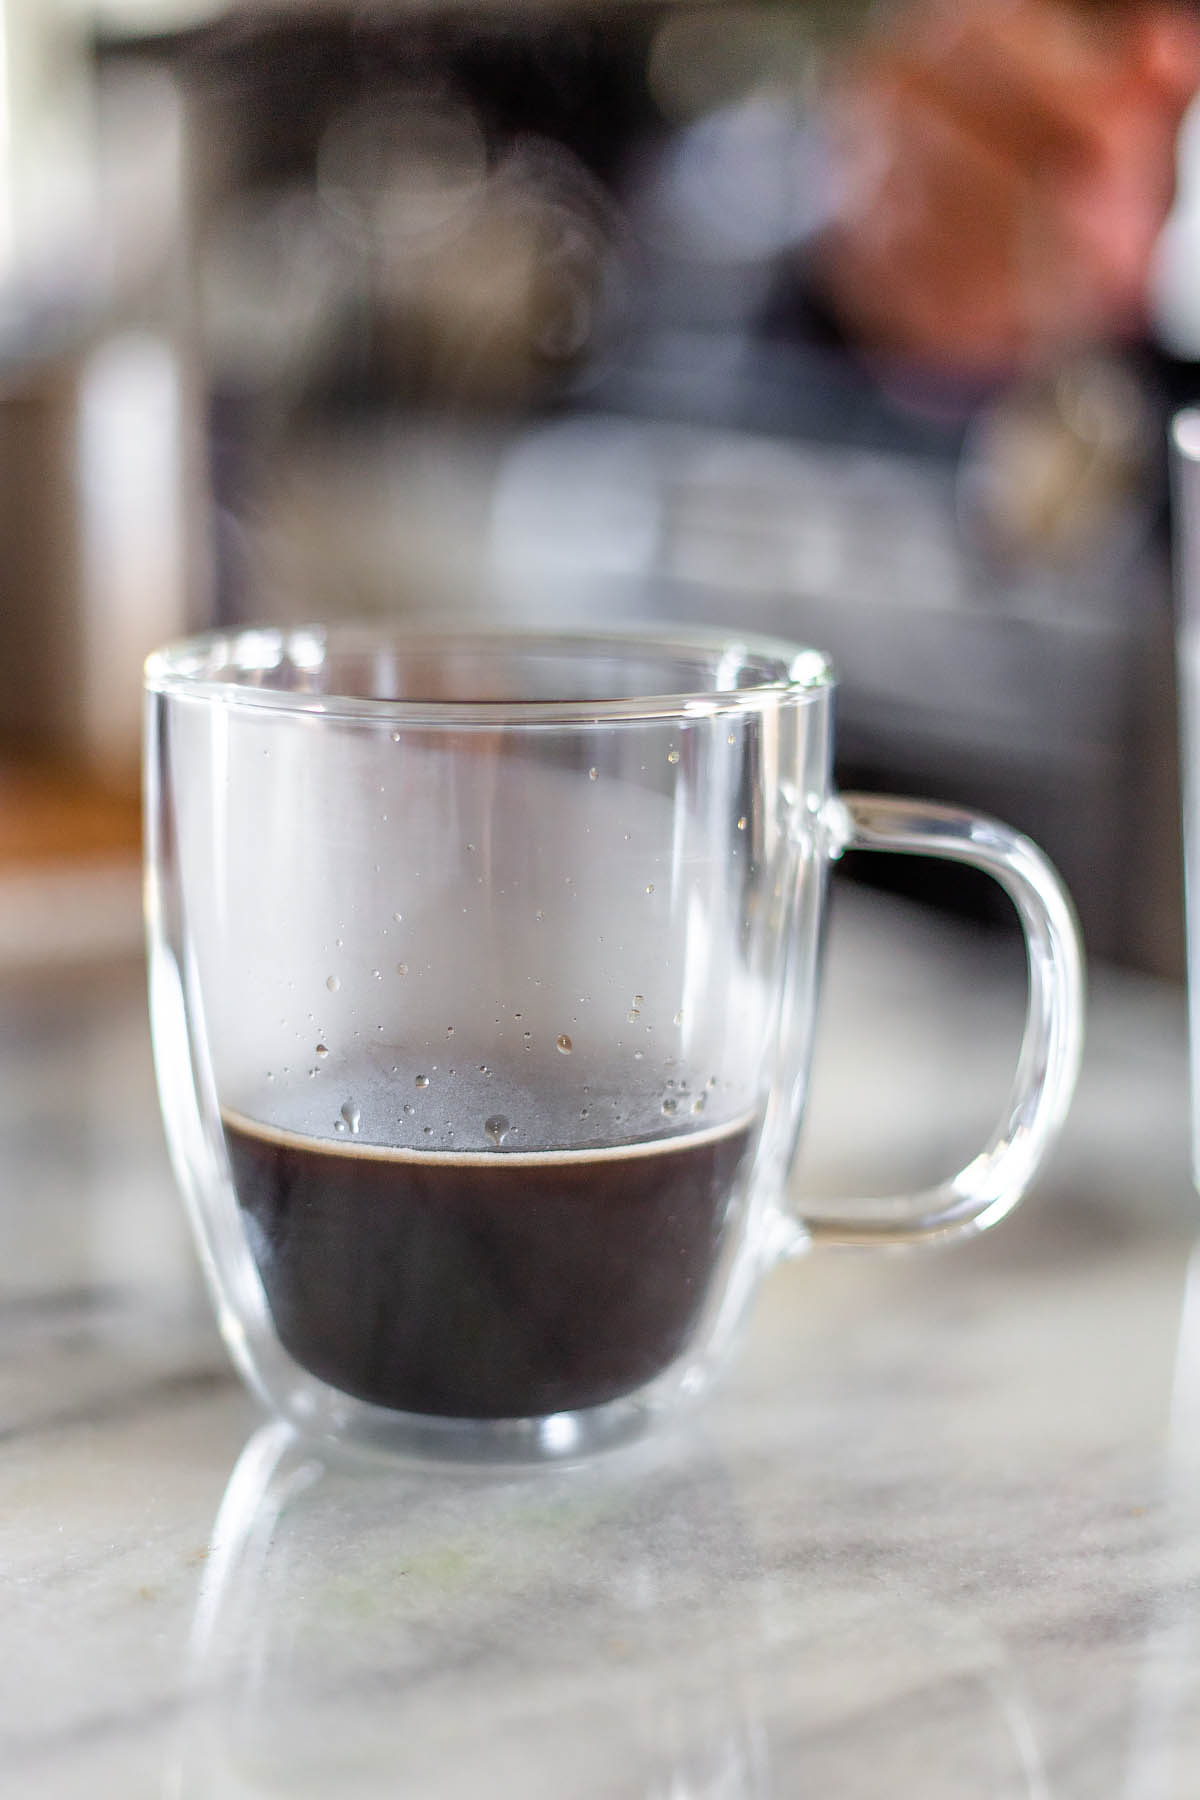 coffee in a glass mug